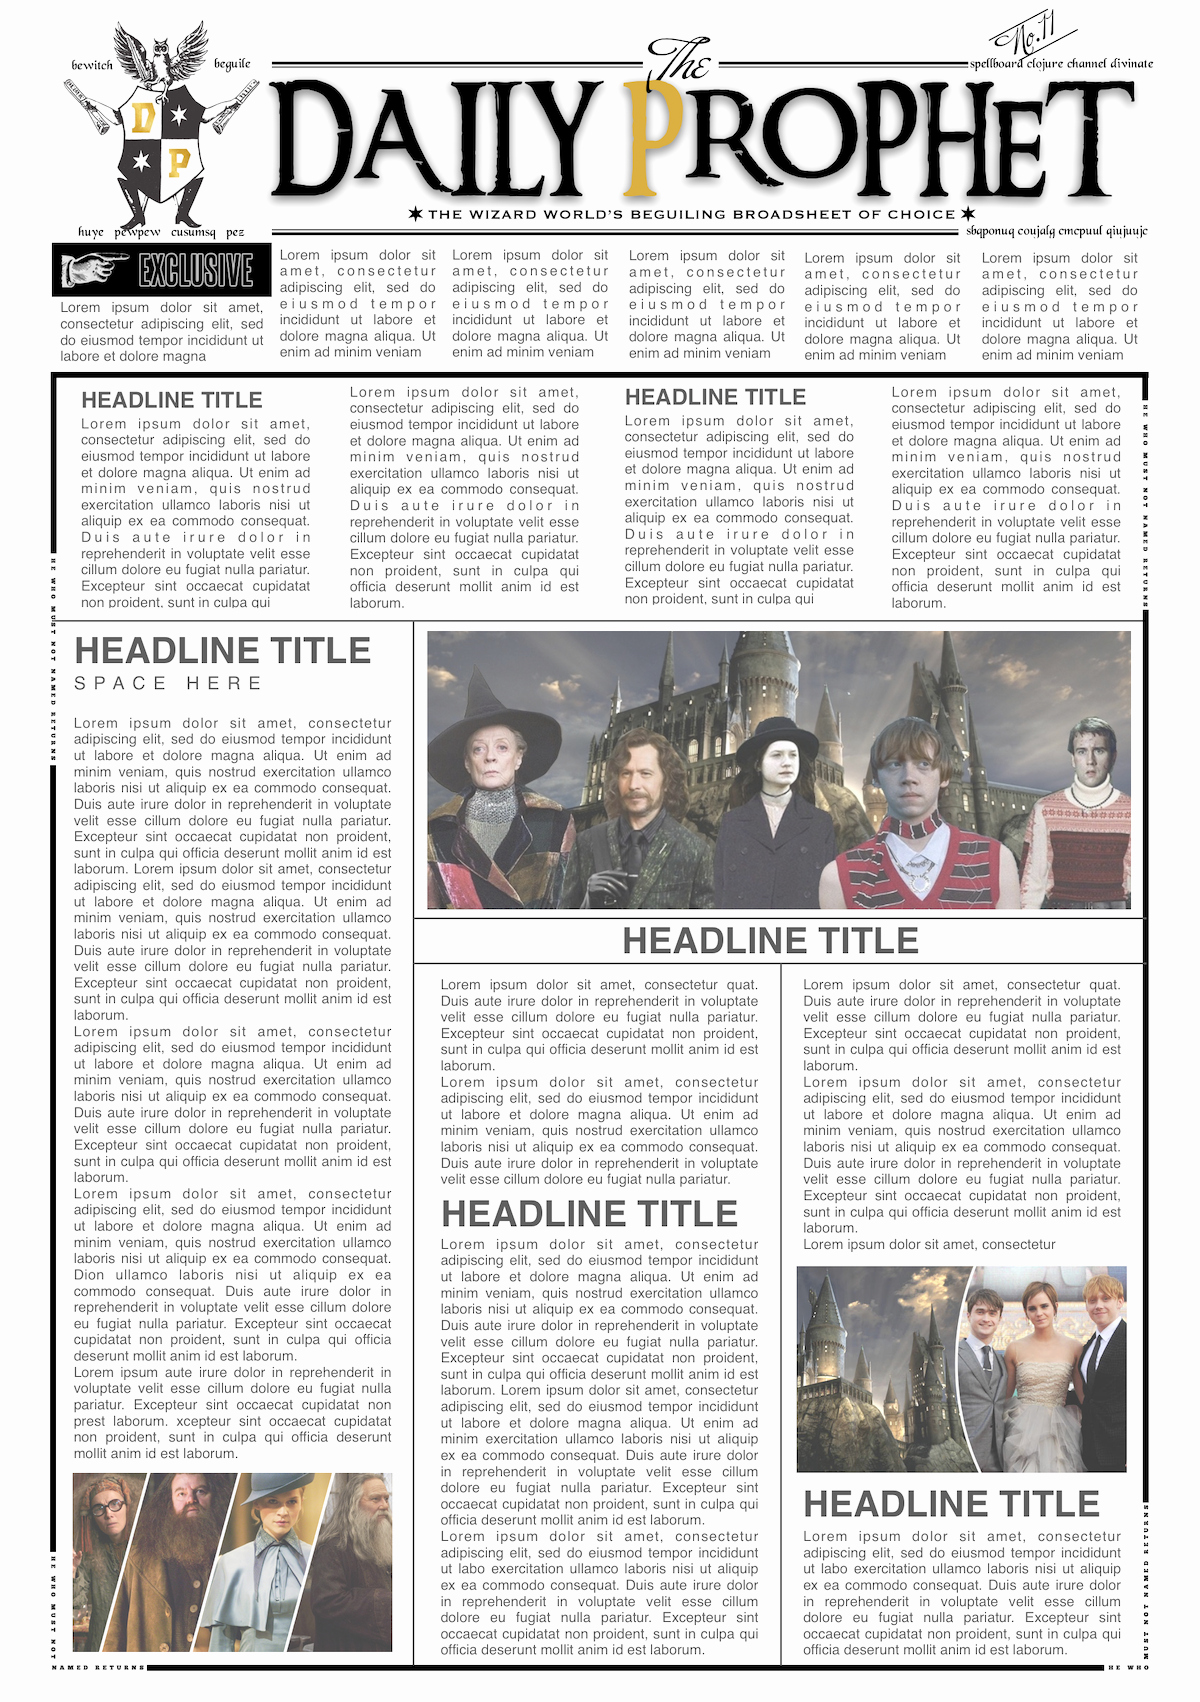 New York Times Newspaper Template Google Docs Beautiful Newspaper Template Design Word Mockup